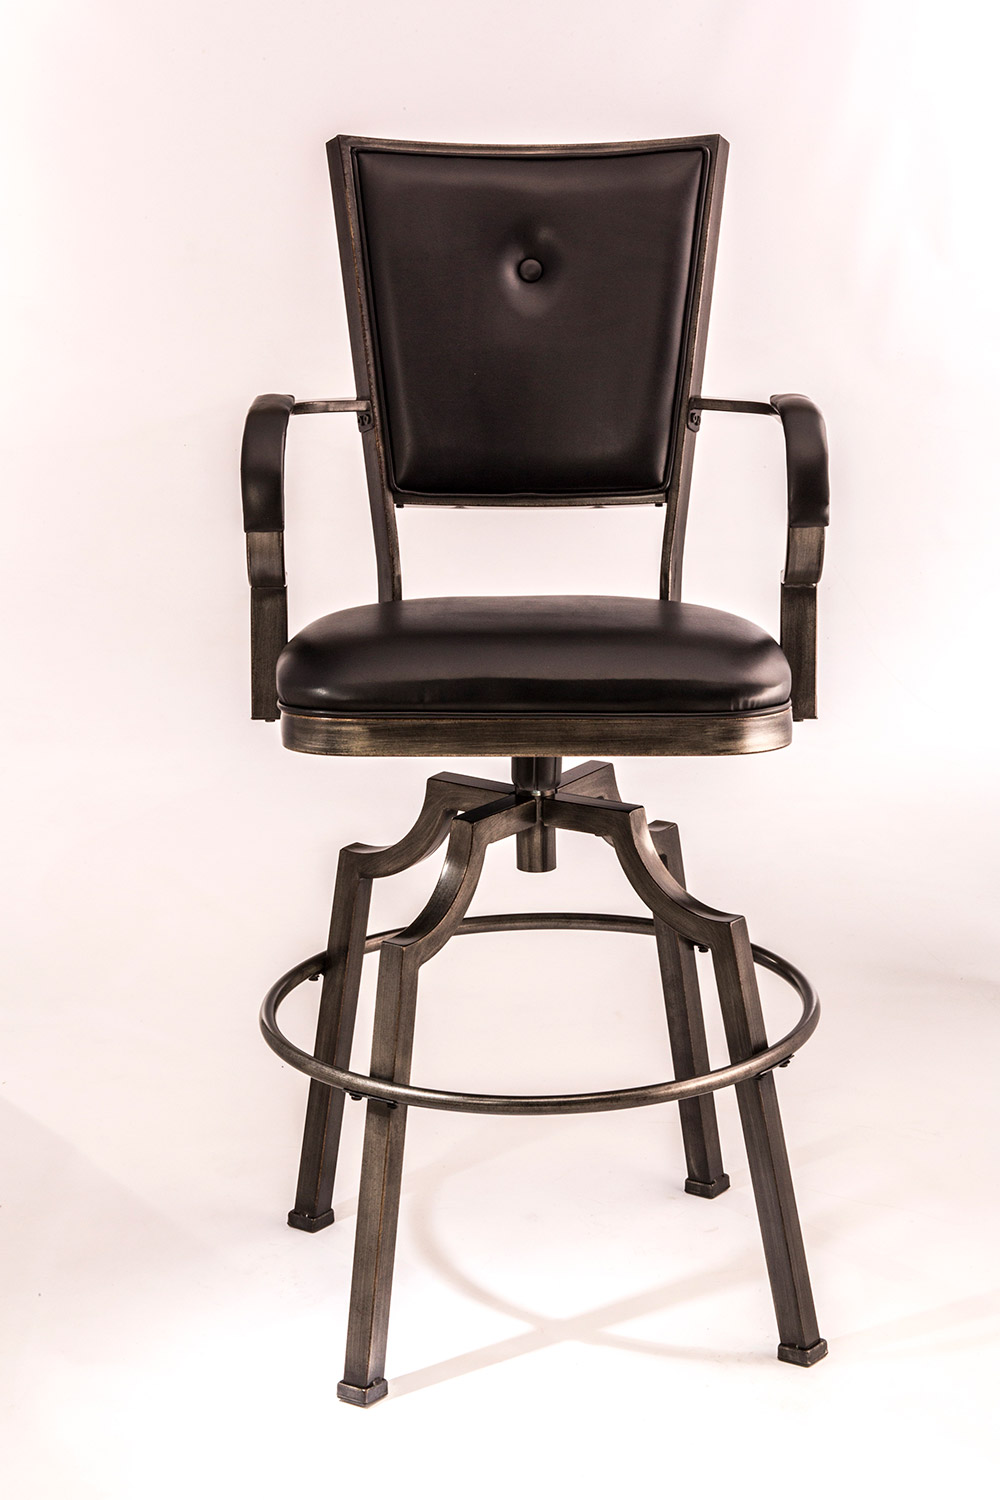 Hillsdale Castlebrook Swivel Bar Stool - Bronze Pewter